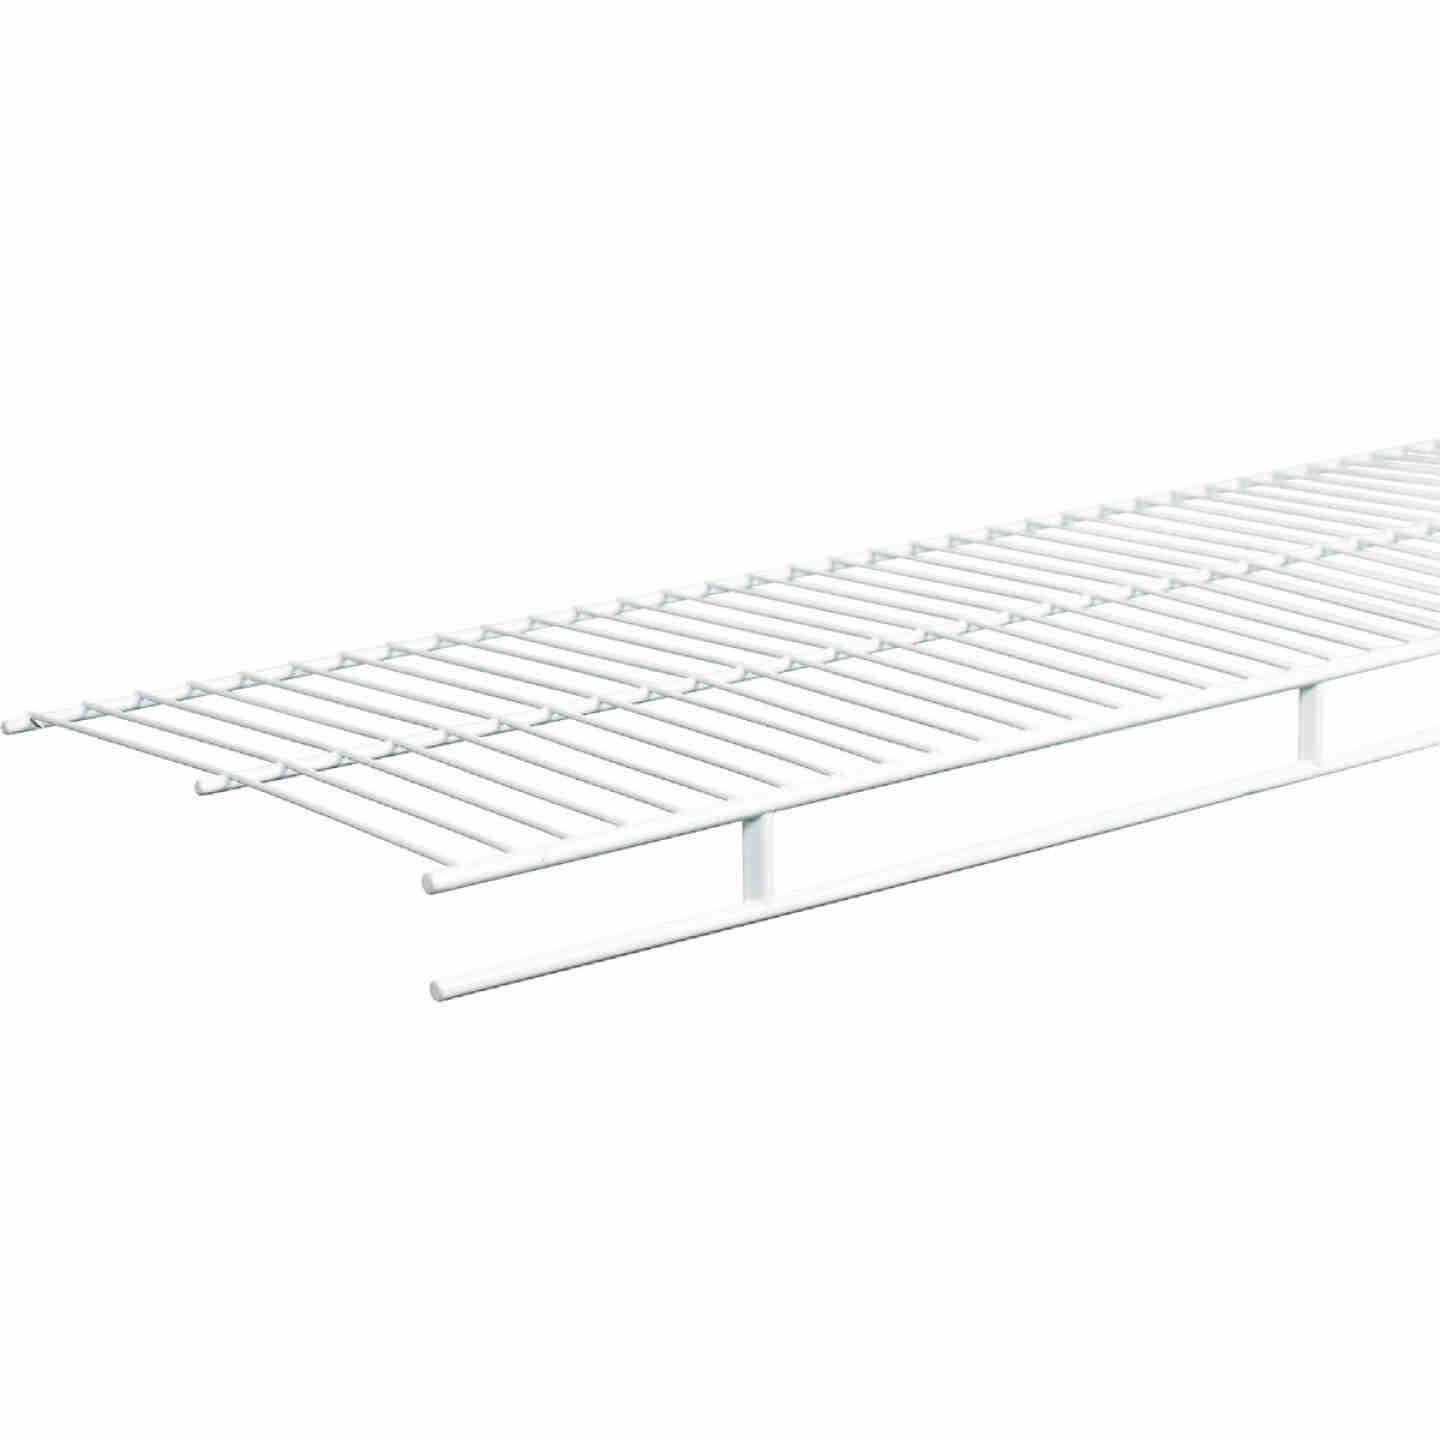 ClosetMaid 6 Ft. W. x 12 In. D. Ventilated Wire Shelf & Rod, White Image 3